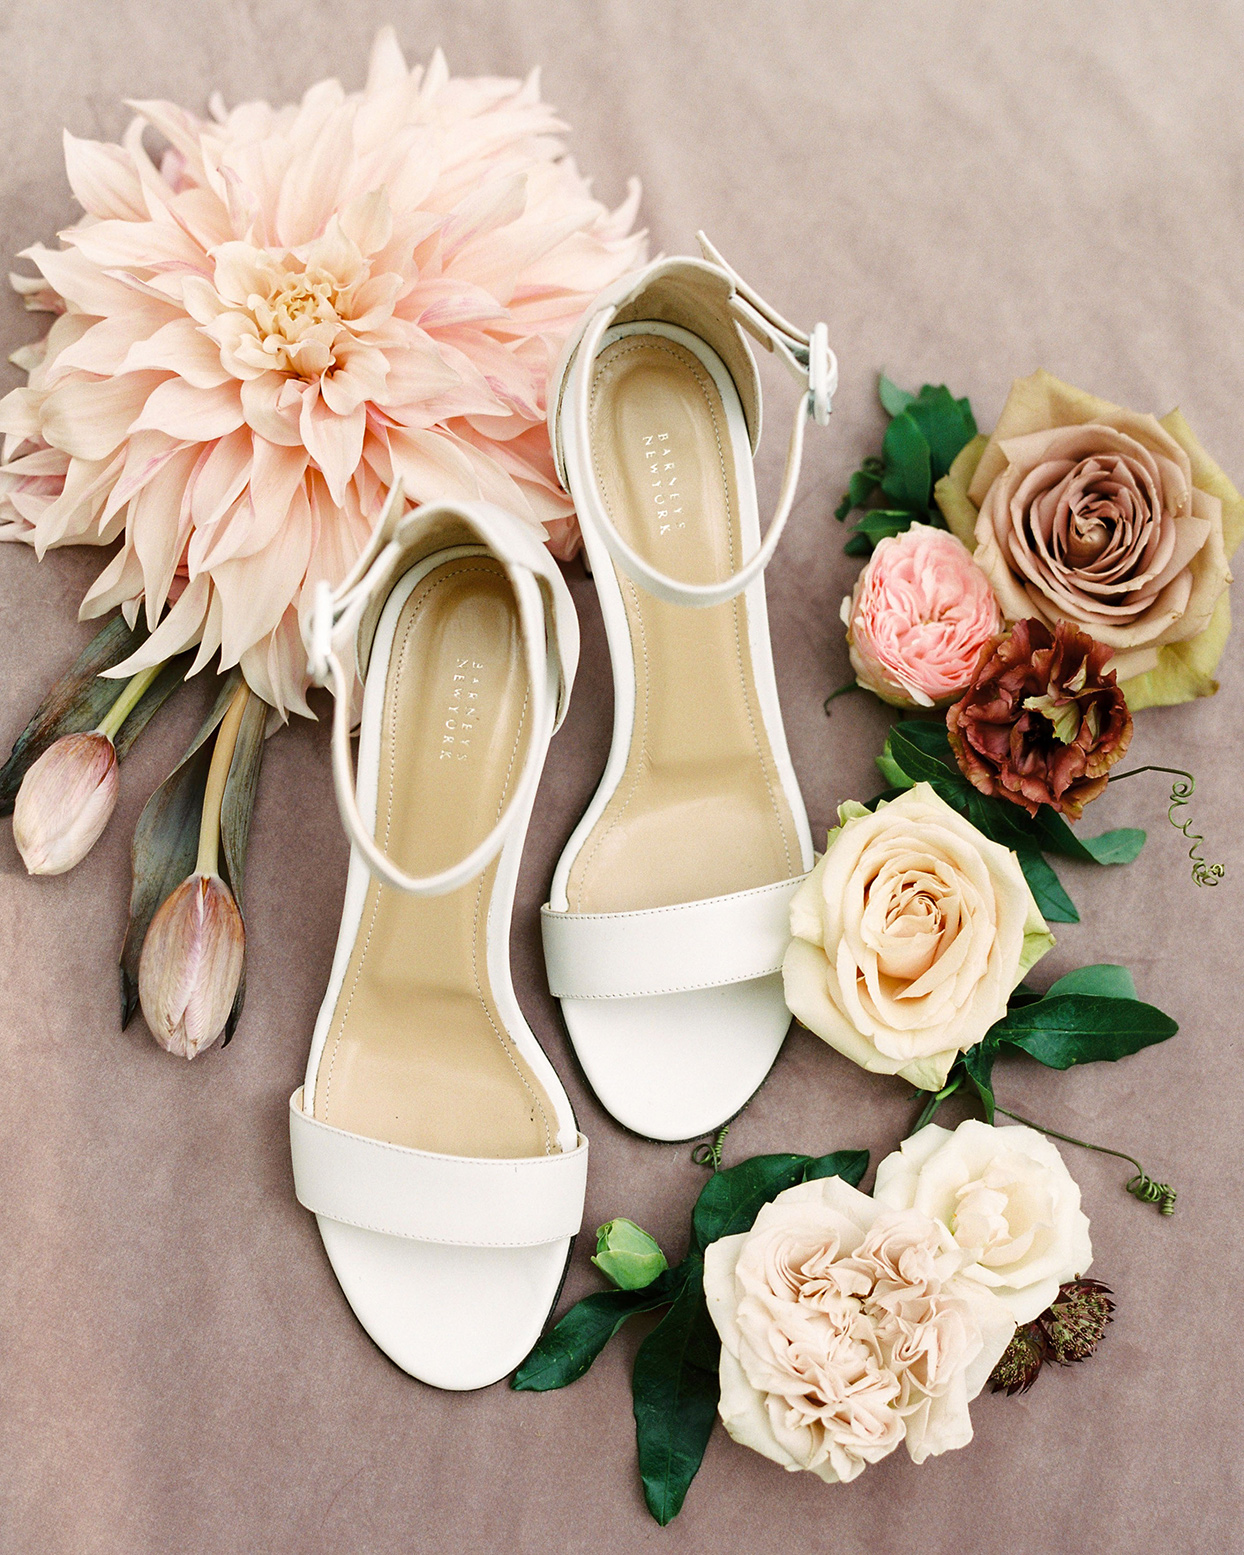 katie nicholas wedding white shoes with flowers